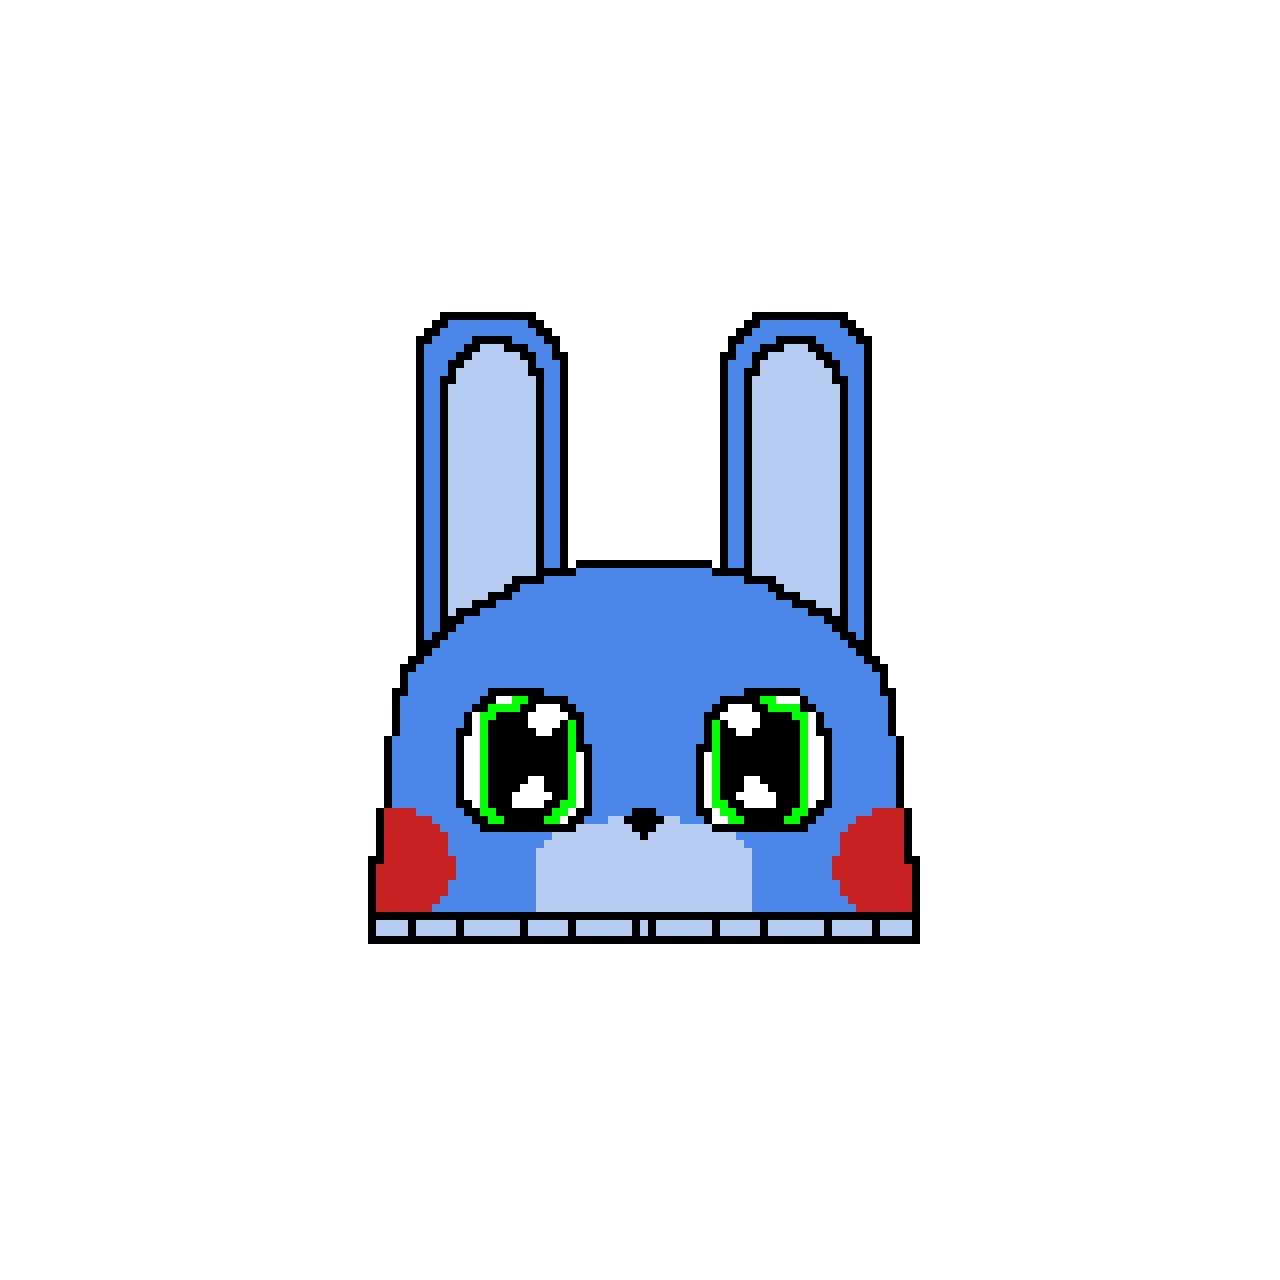 Toy Bonnie The Bunny Slipper (If This Gets Ten Likes I'll Draw Shadow Bonnie The Bunny Slipper